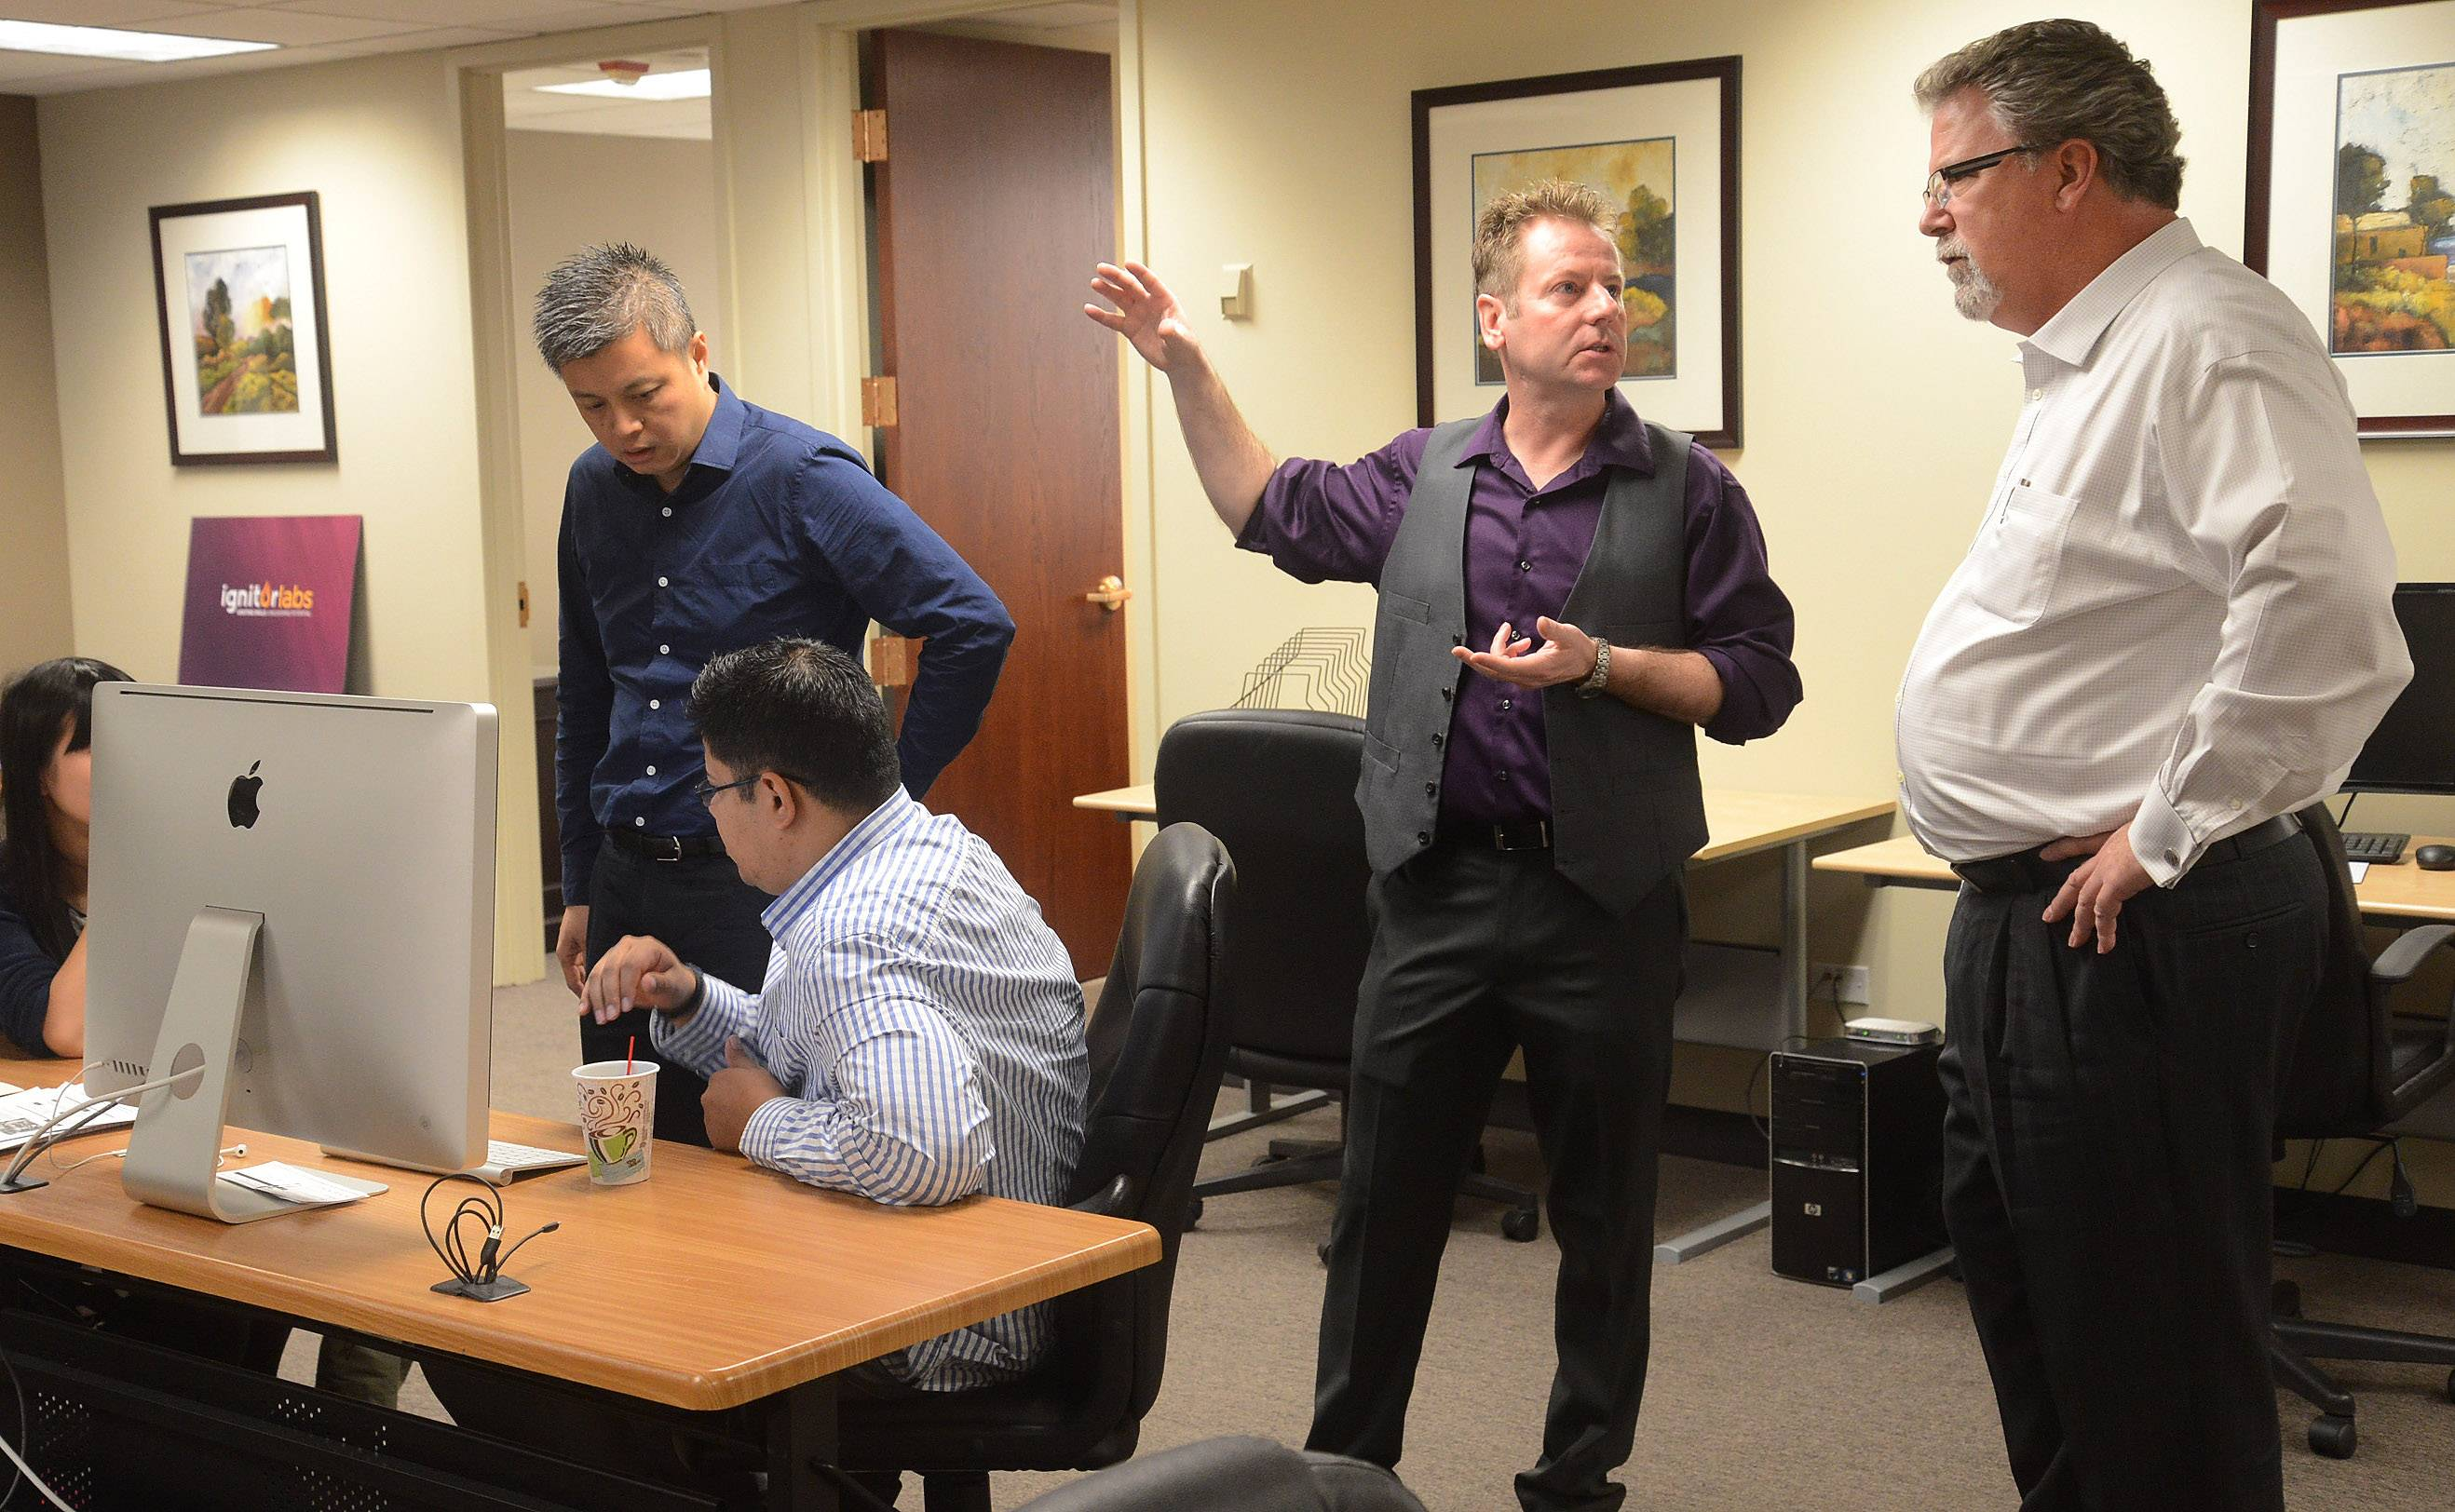 George Nicholson, right, president and CEO of Ignitor Labs, directs some technical staff members at his company's office in Rolling Meadows. Ignitor Labs develops online training programs for technical fields such as commercial food service repair.